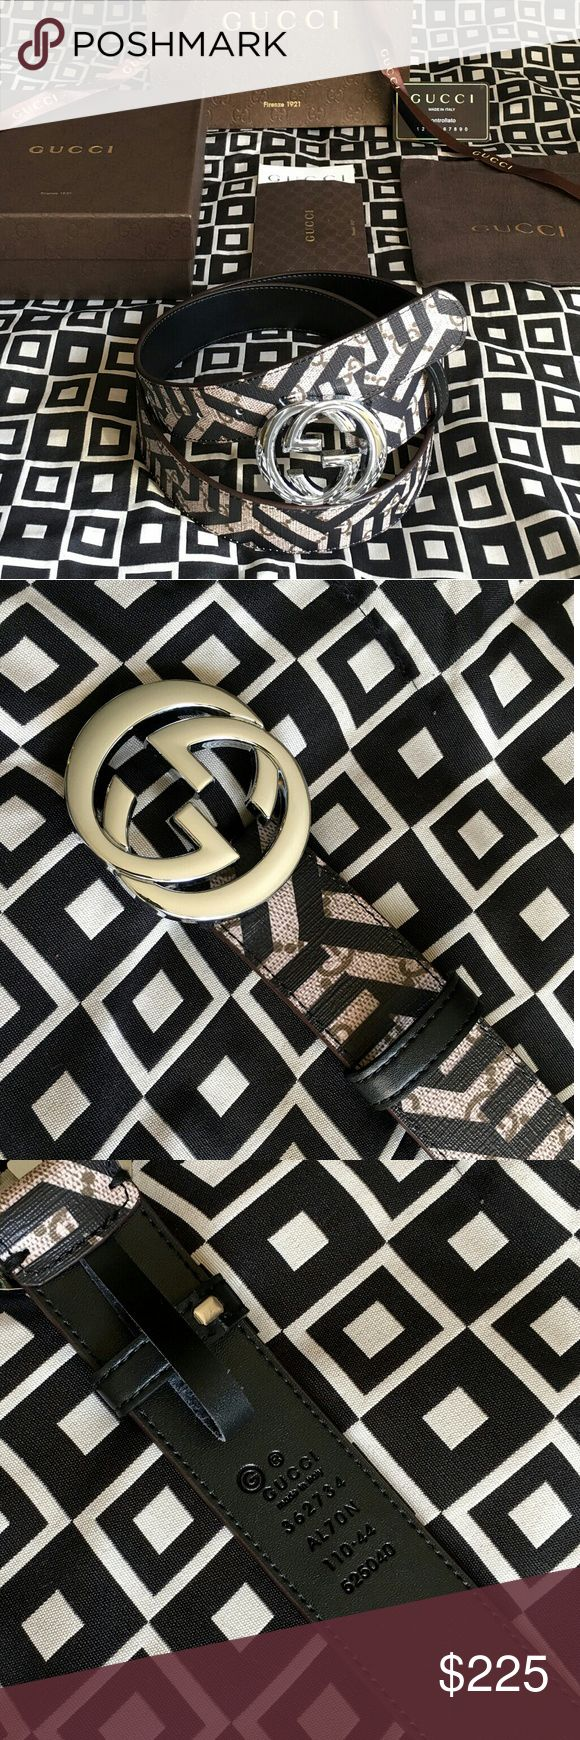 """Gucci GG Caleido Belt!!! Gucci GG Caleido Belt With Silver G Buckle!!!  Brand New!!!  Size Available - 32"""", 34"""", 36"""", 38"""", 40"""", 42"""", 44""""!!!  Includes Gift Box, Dust Bag, Authenticity Card, Ribbon, Etc!!!  Great Gift Idea!!!  Last Available!!!  Check My Listings For Other Great Items!!!             Ignore: Gucci gg monogram casual dress belts men's women's guccissma leather monogram web tiger bee embossed panther wool cable knit blooms supreme print angry cat ufo dragon studded snake double g…"""